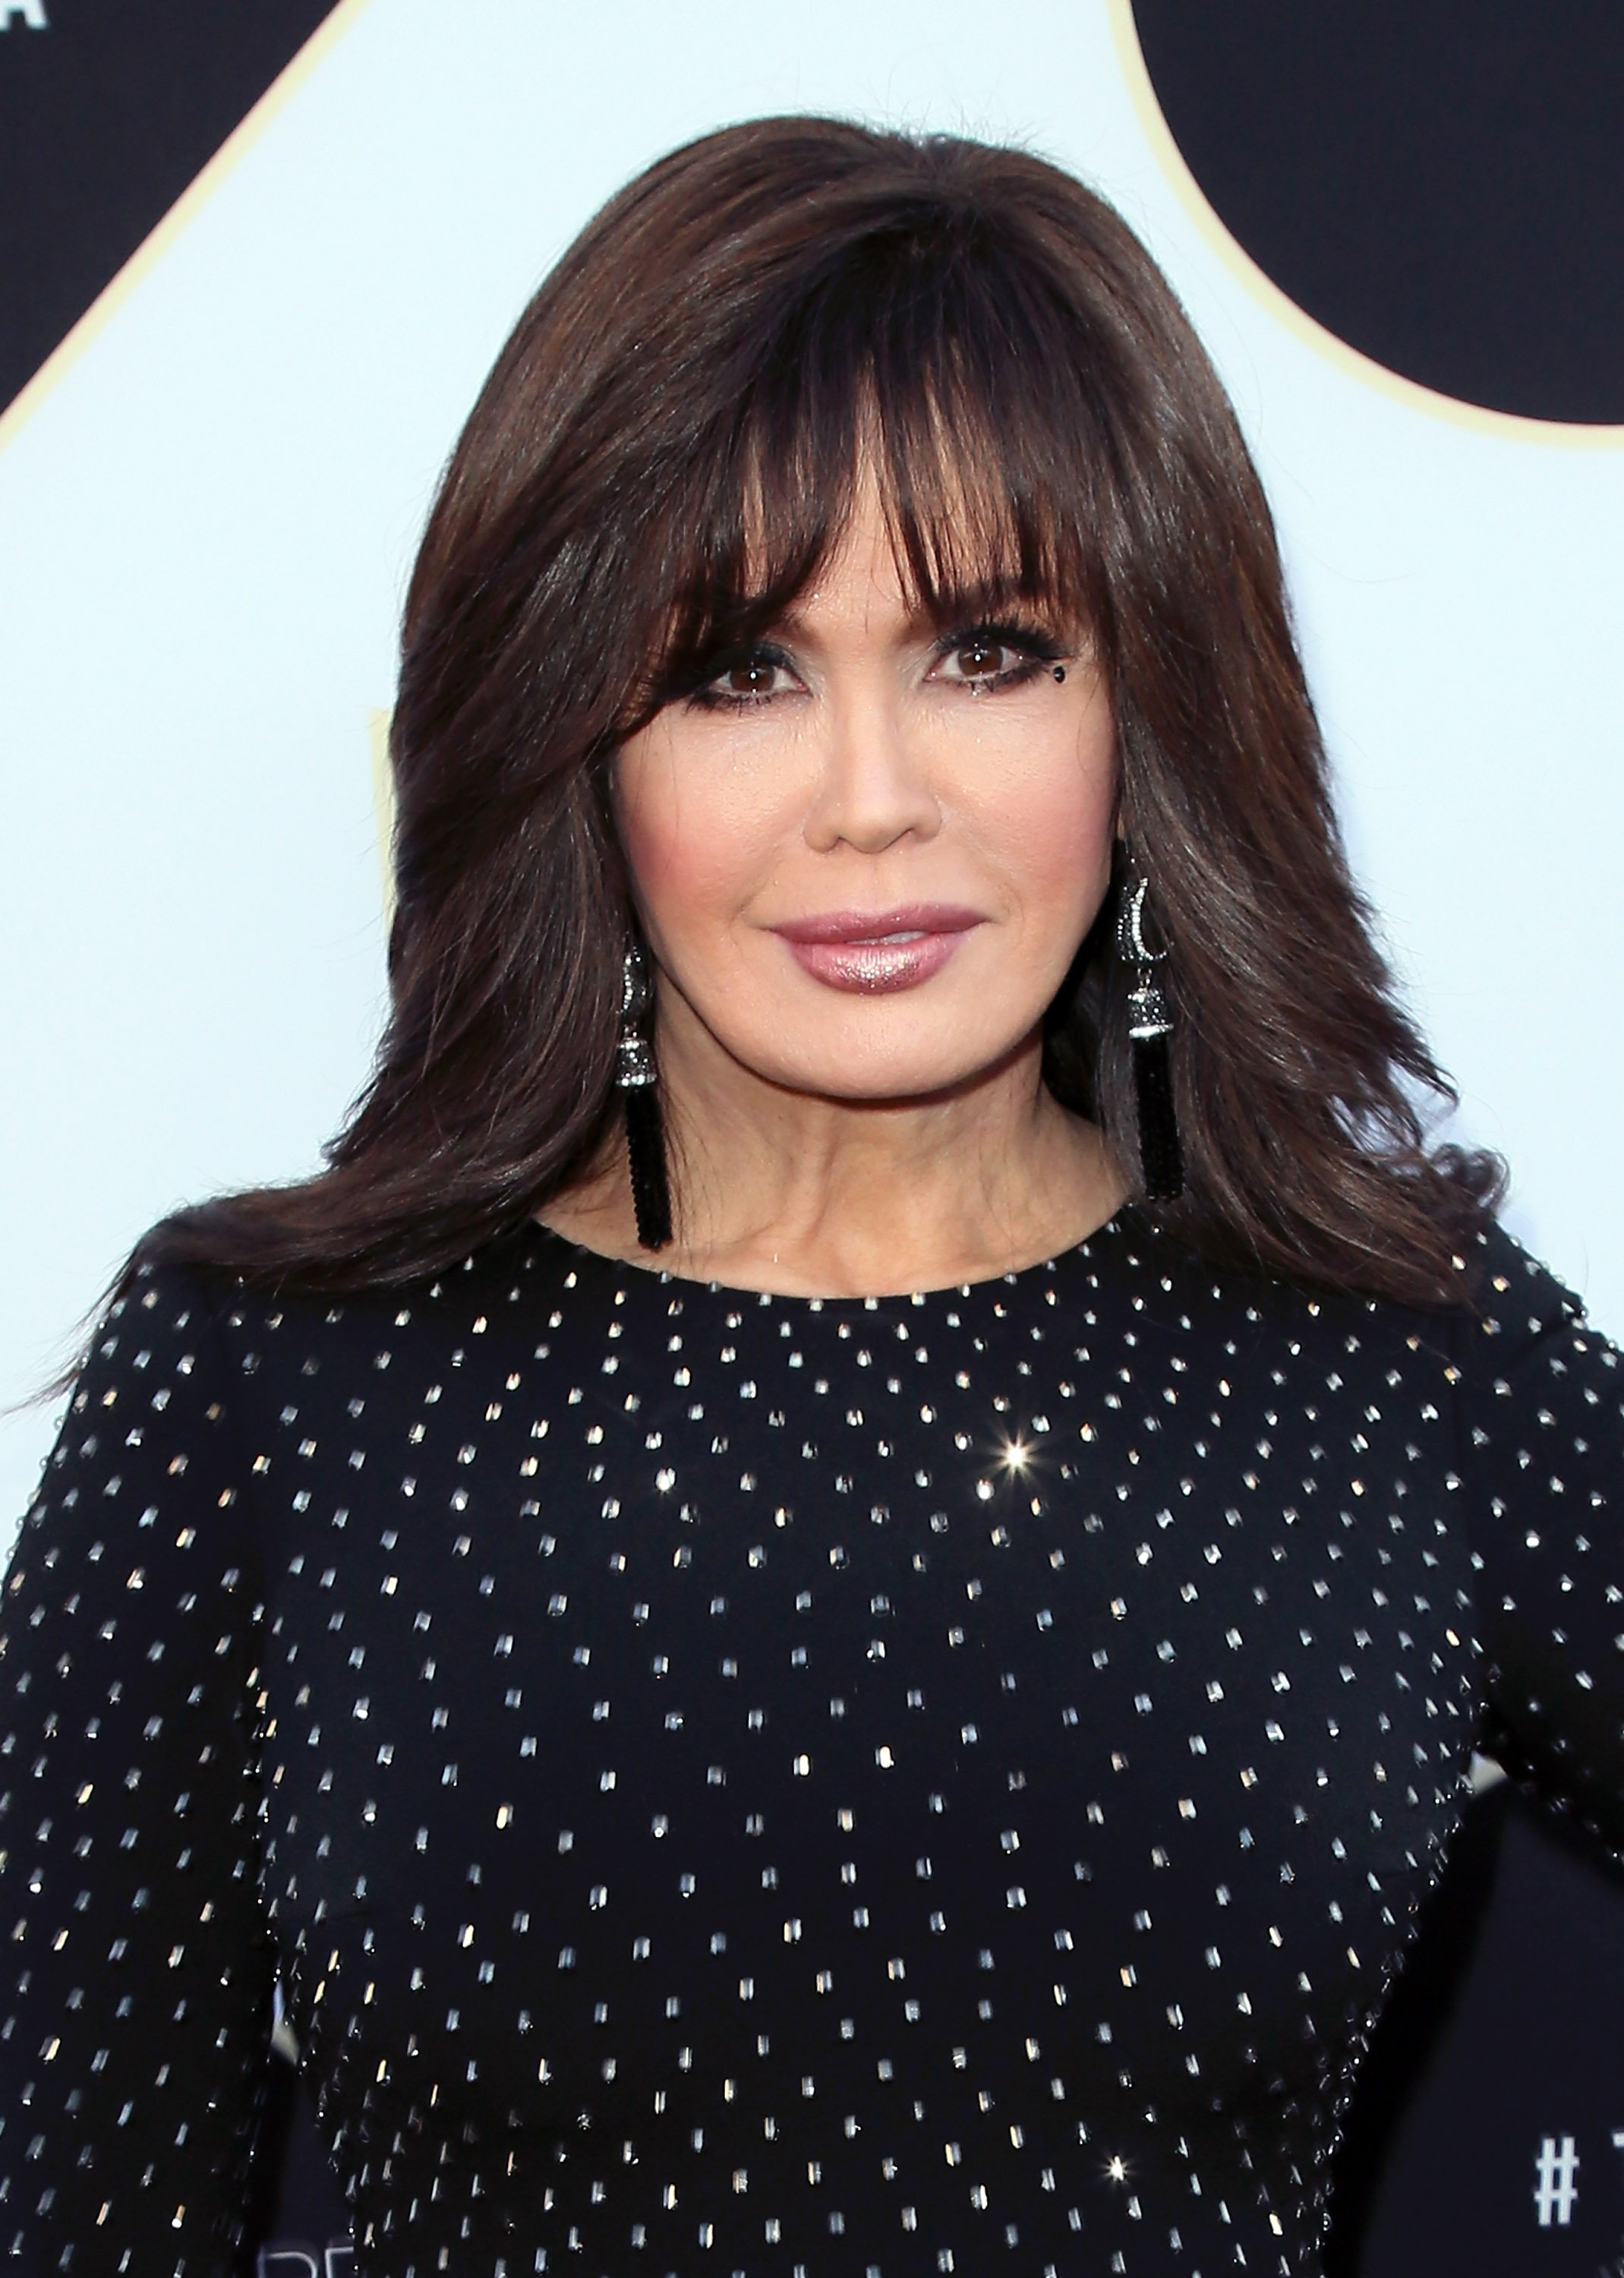 Marie Osmond attends the 2015 TV Land Awards in Beverly Hills, California on April 11, 2015 | Photo: Getty Images